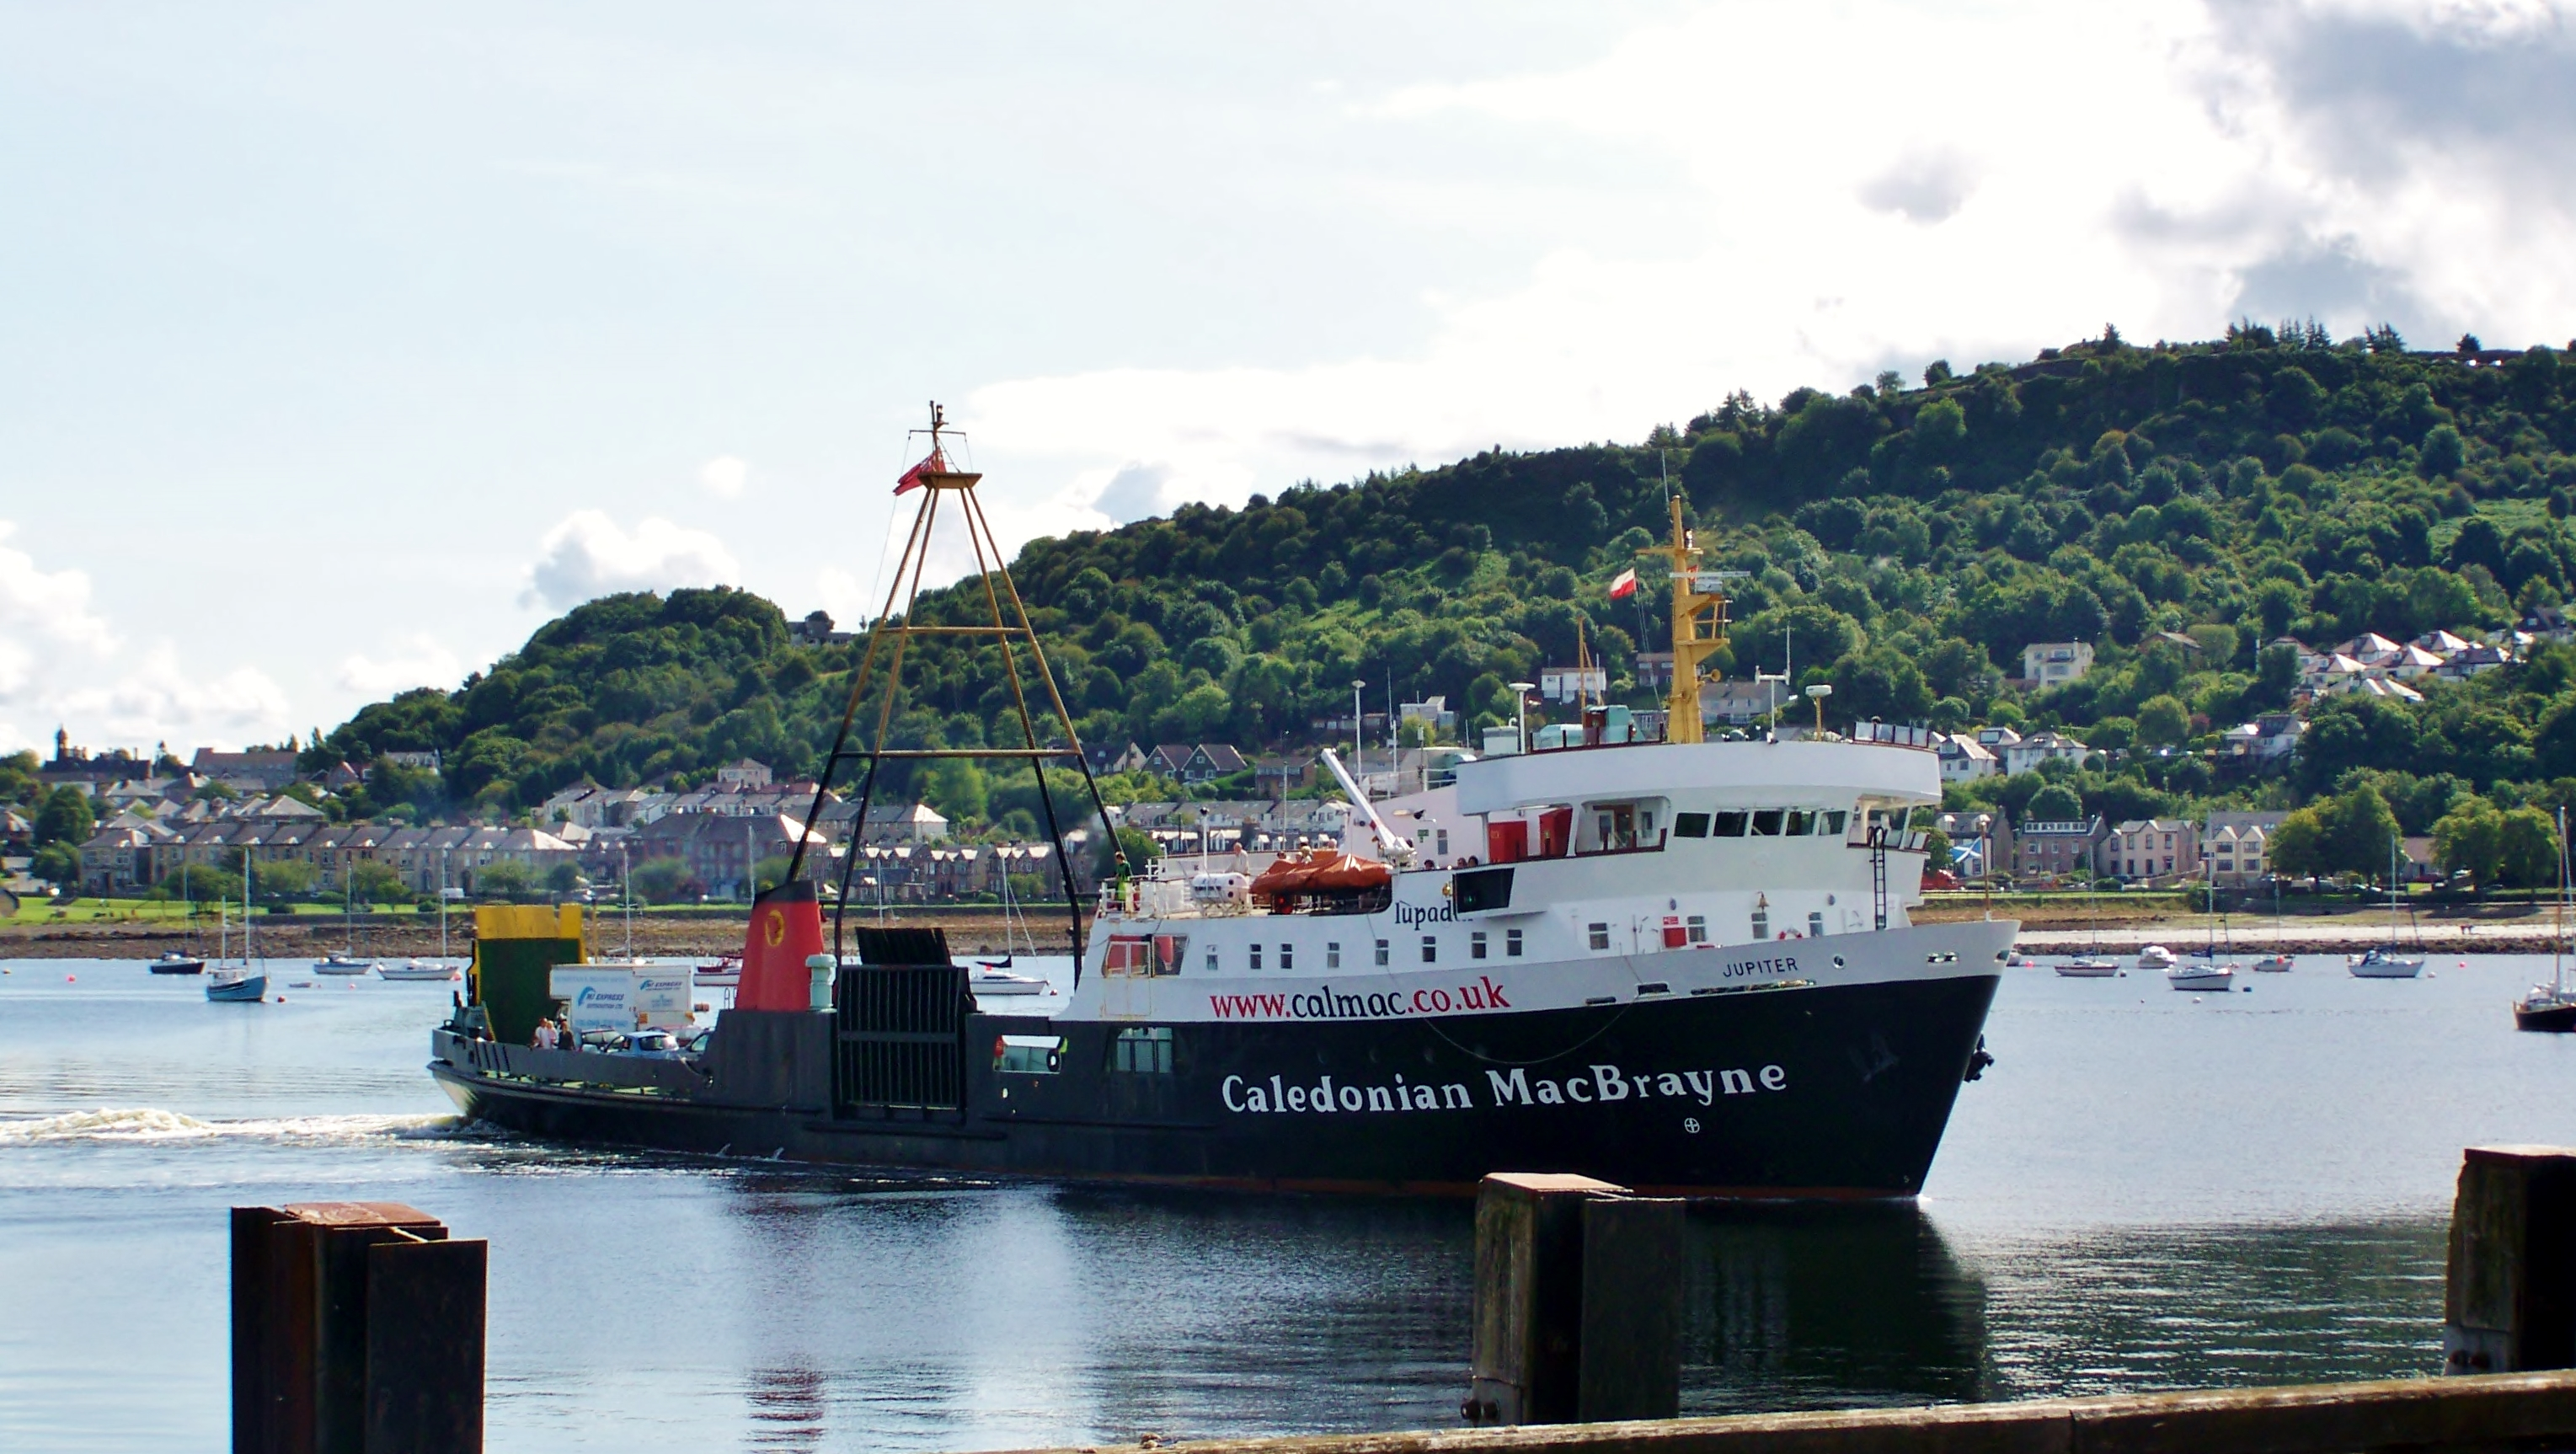 Jupiter at Gourock (Ships of CalMac)